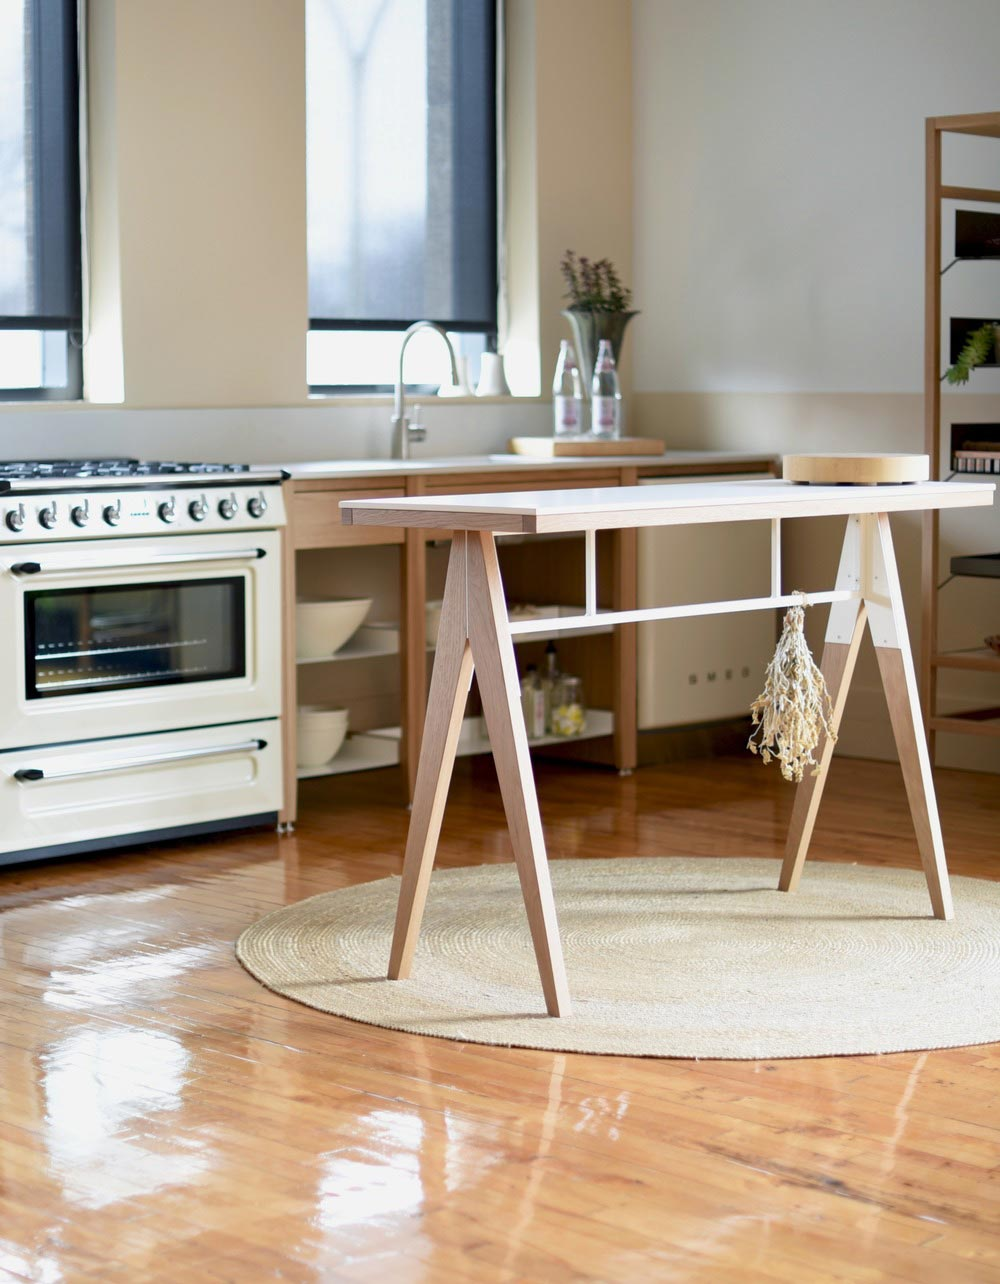 modular kitchen design island - Coquo Modular Kitchen